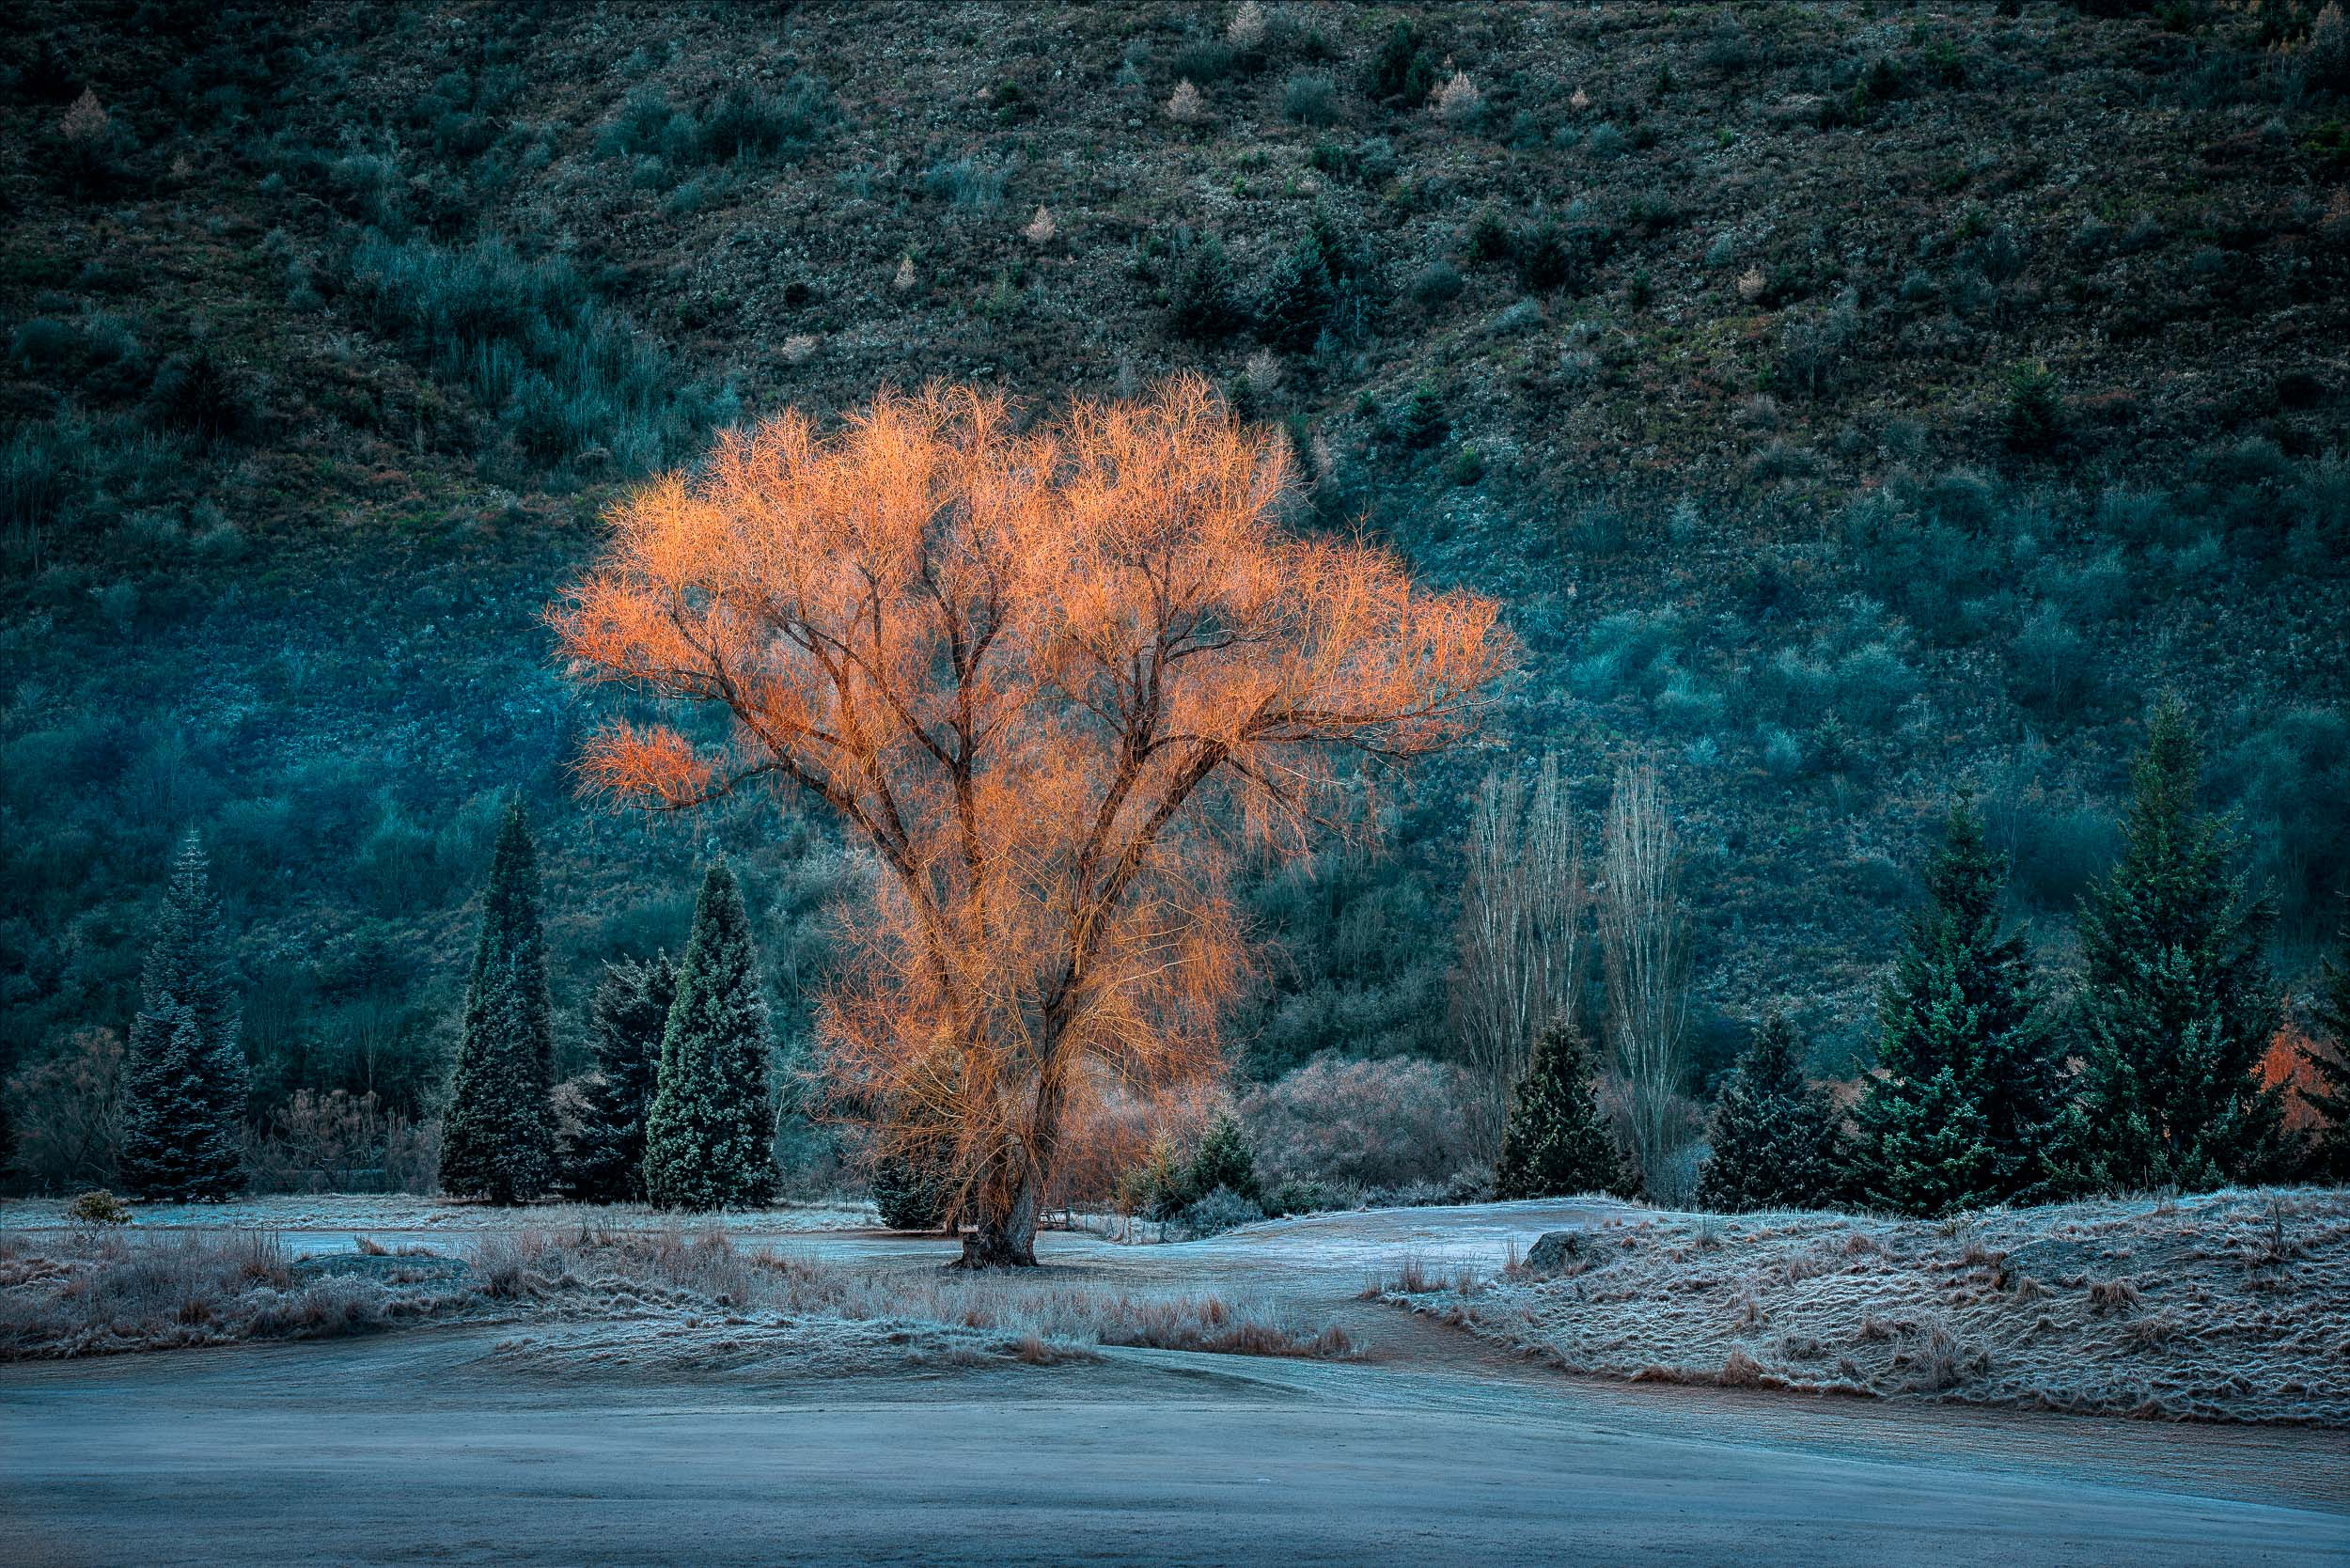 The last splash of  Autumn color  in an othewise wintery landscape near  Arrowstown  on the South Island of  New Zealand .